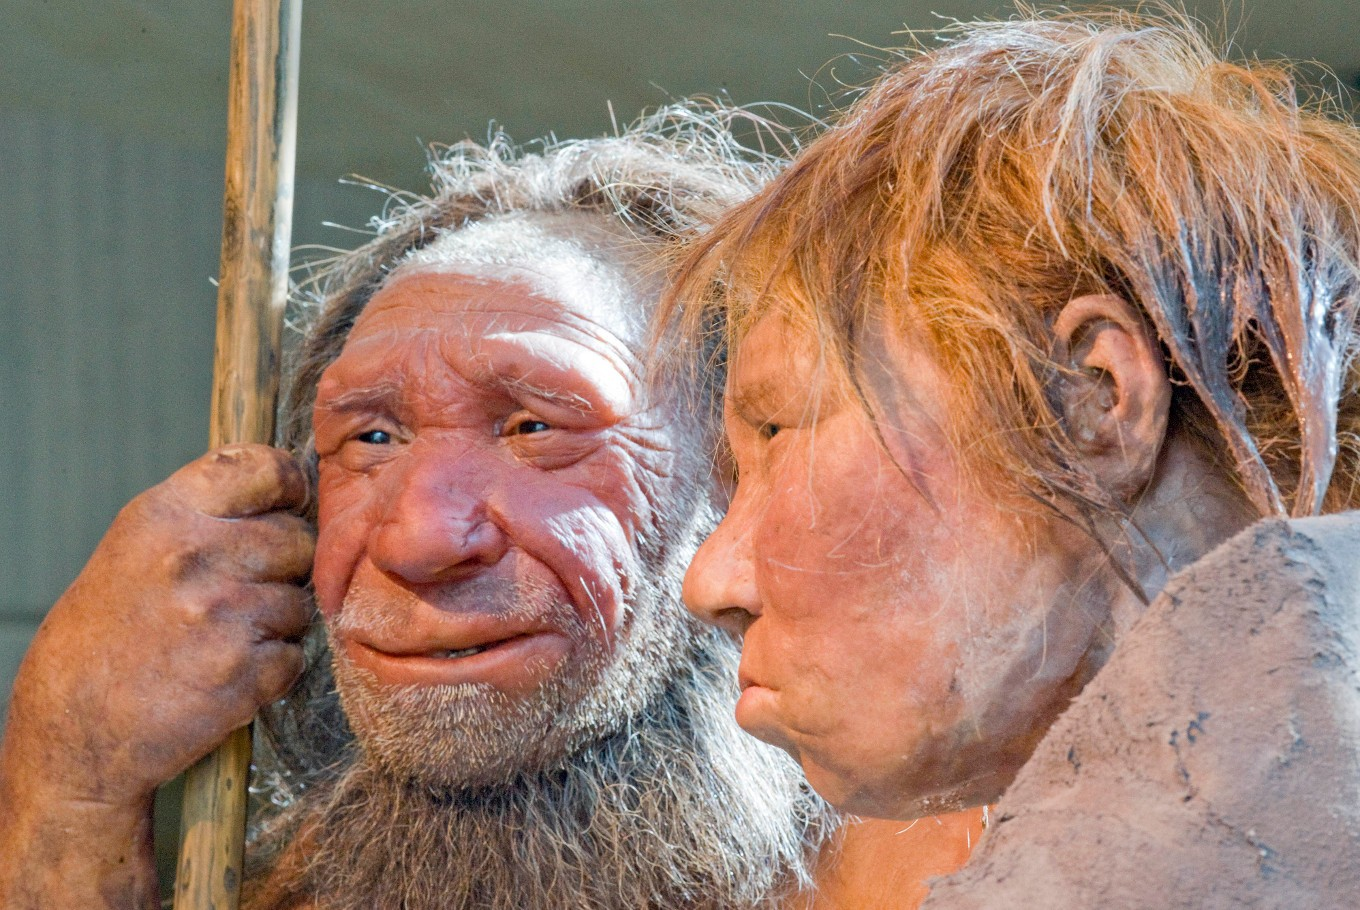 Stone Age cannibals: Hunting each other not worth the hassle